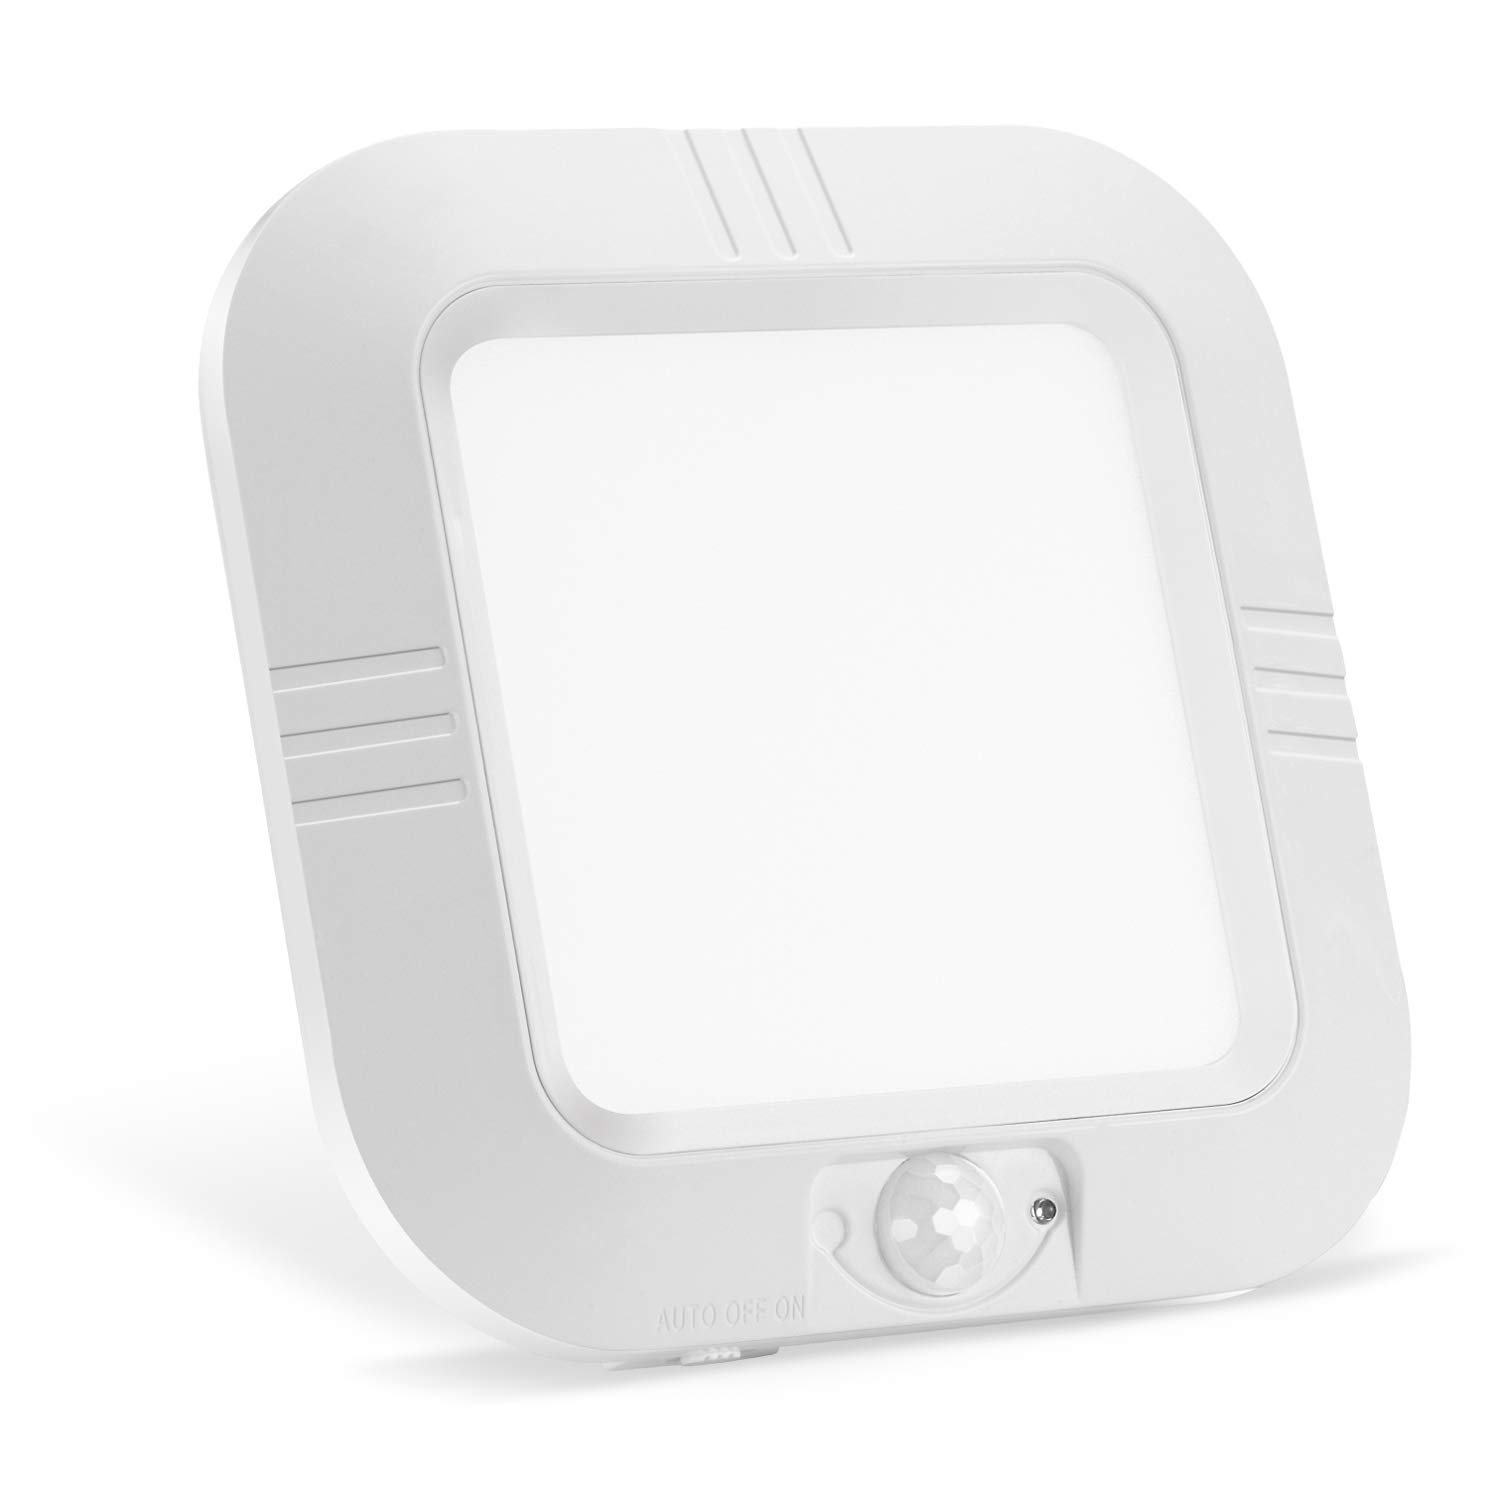 Lineway Motion Sensor Ceiling Light Battery Operated Wireless Motion Activated LED Ceiling Light 6000K 180LM Indoor Outdoor for Closets Stairway Cabinet Basement Laundry Pantry(Battery Not Included)